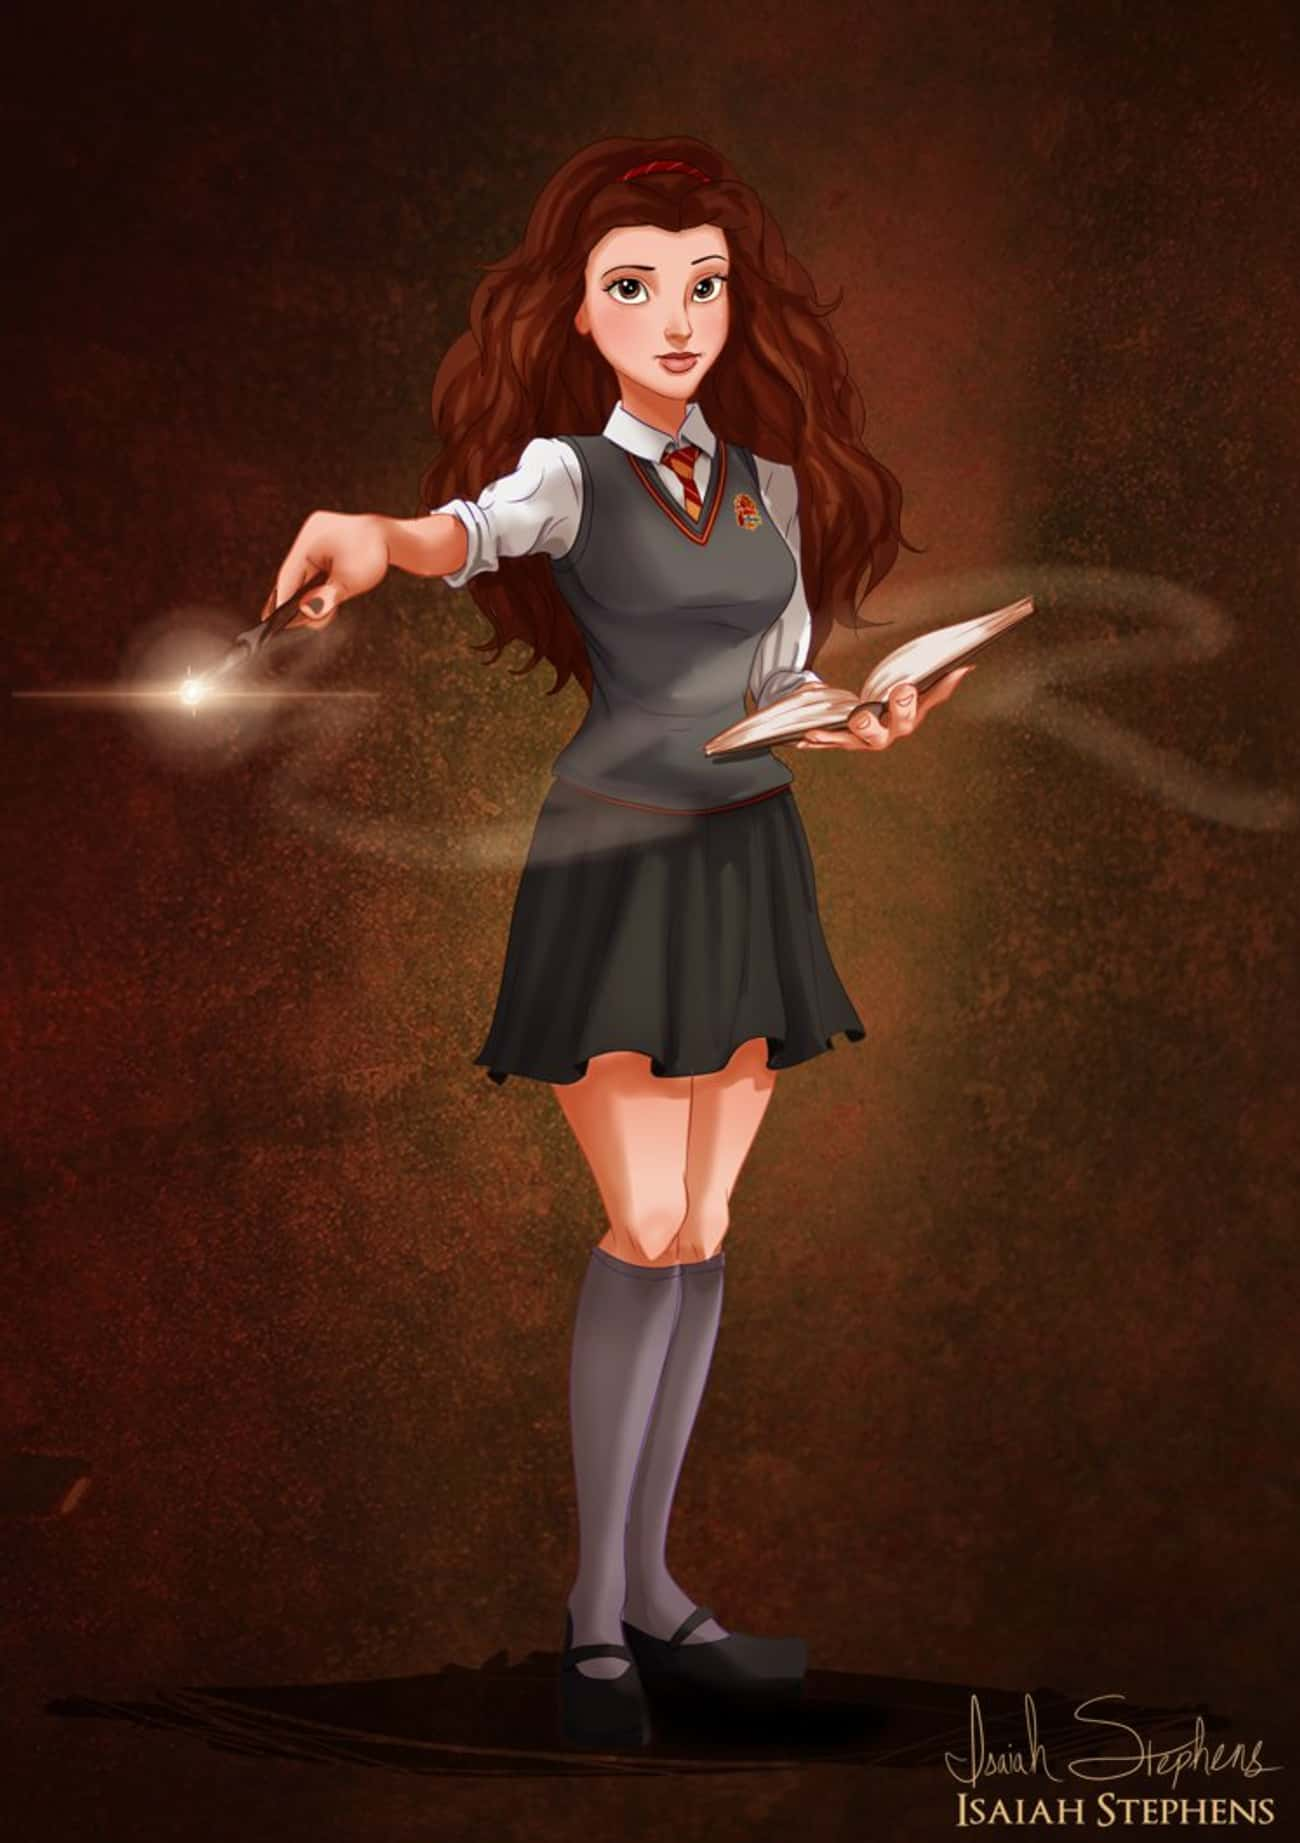 Literary Worlds Collide When Belle Goes As Hermione Granger For Halloween